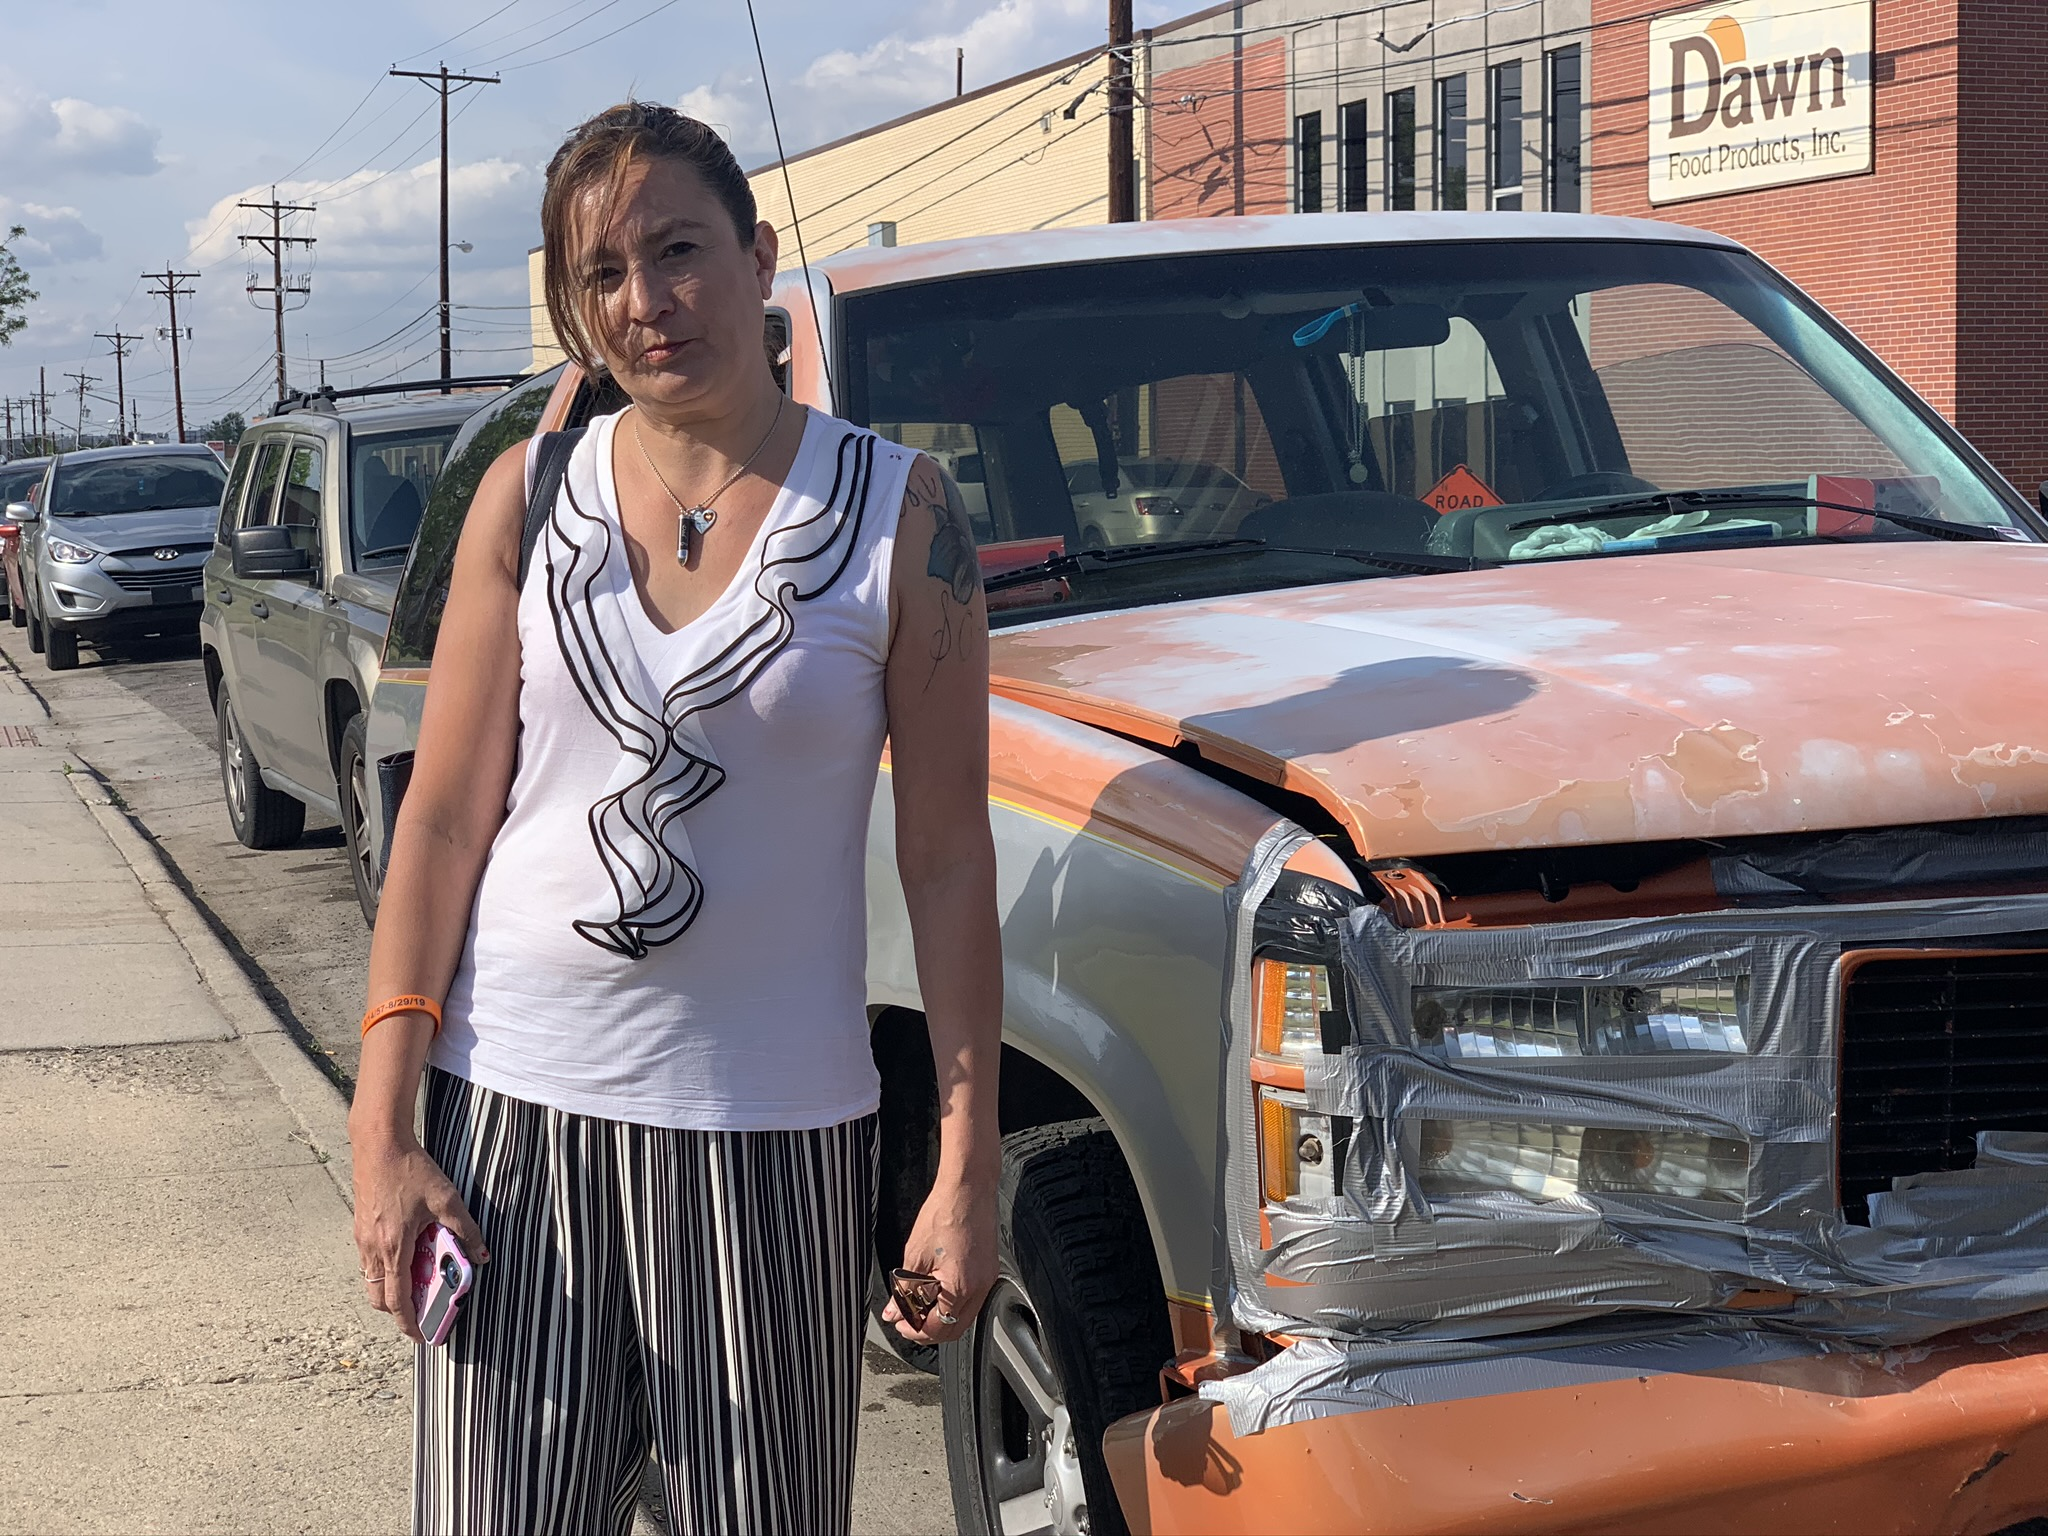 Tiffany Quintana poses for a photo on May 28 in the Sunnyside neighborhood of Denver, near the vehicle where she lived for several weeks. (Andrew Kenney/CPR News)